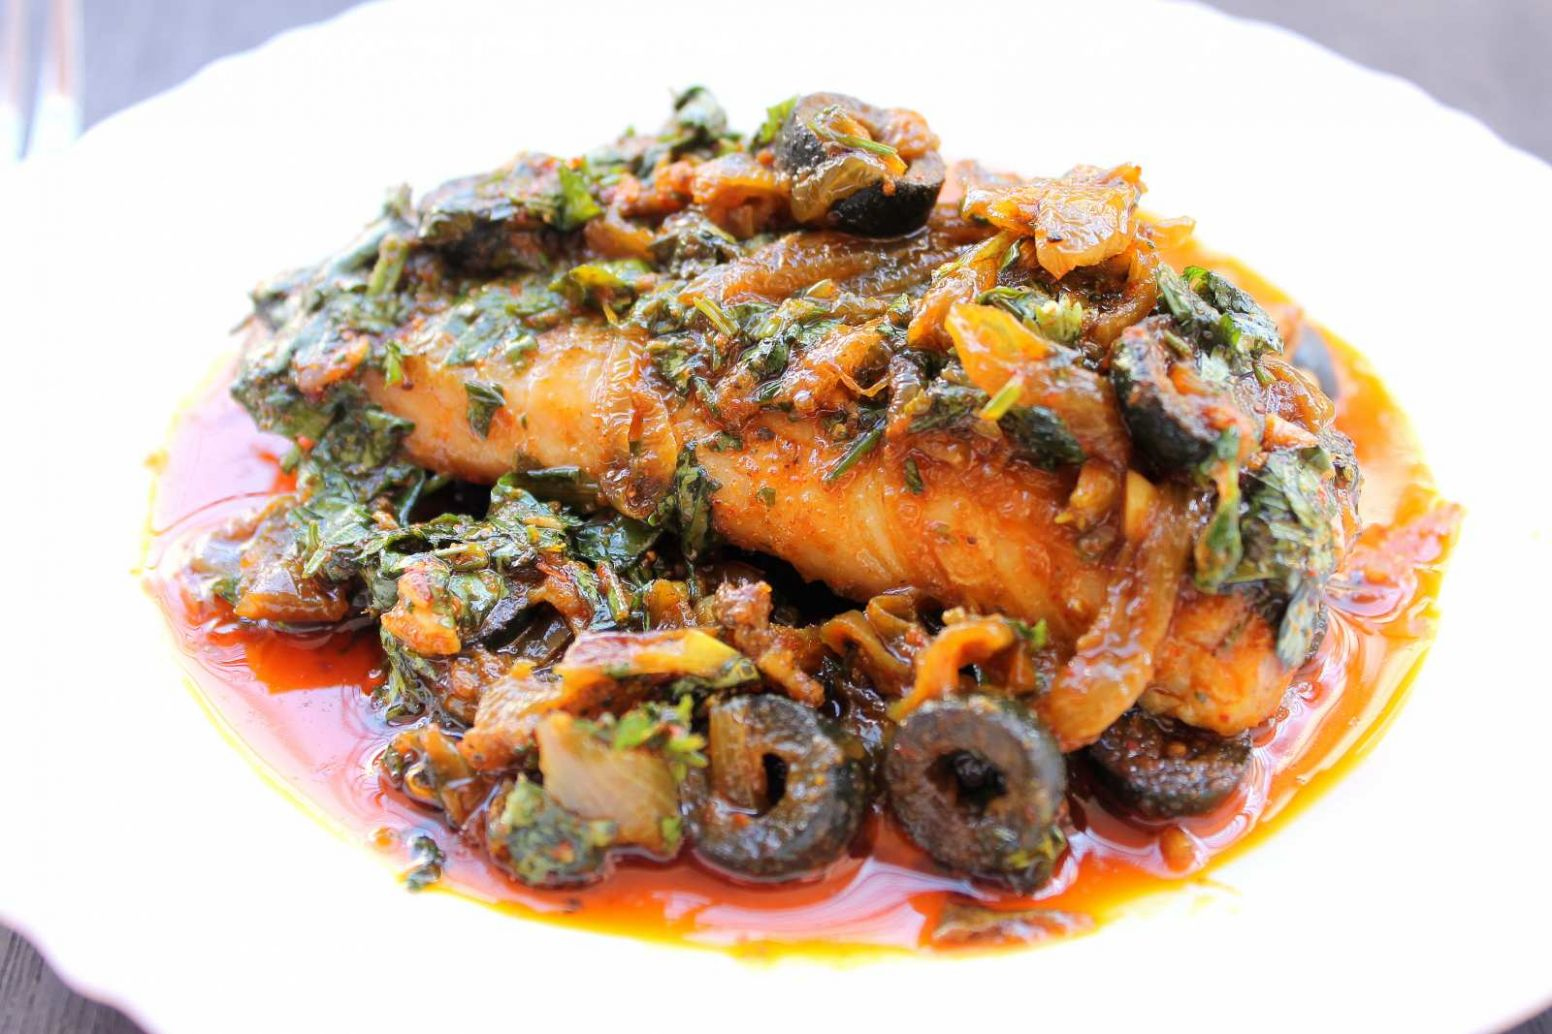 Moroccan Baked Fish Recipe - Recipes Fish Dishes